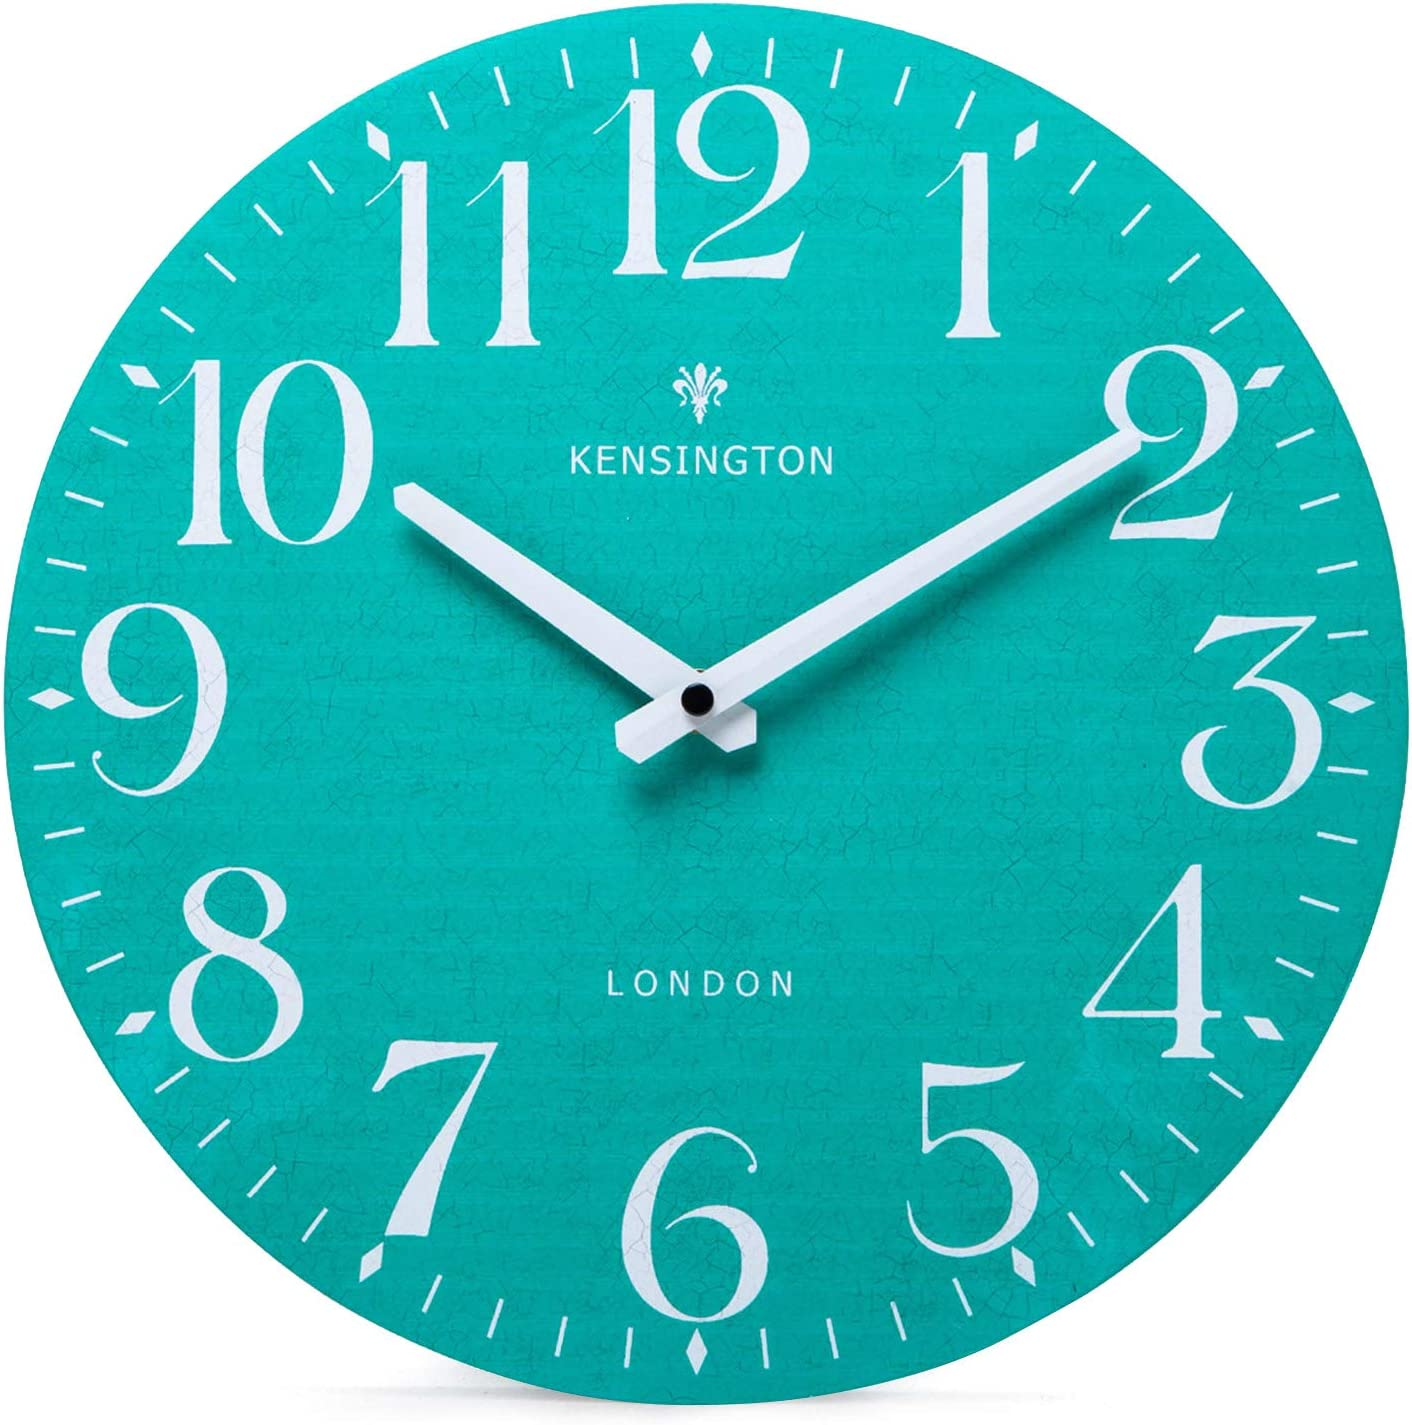 NIKKY HOME Teal Wall Clock Battery Operated 12 Inch - Silent Non Ticking Wooden Round Clock for Living Room Bedroom School Classroom